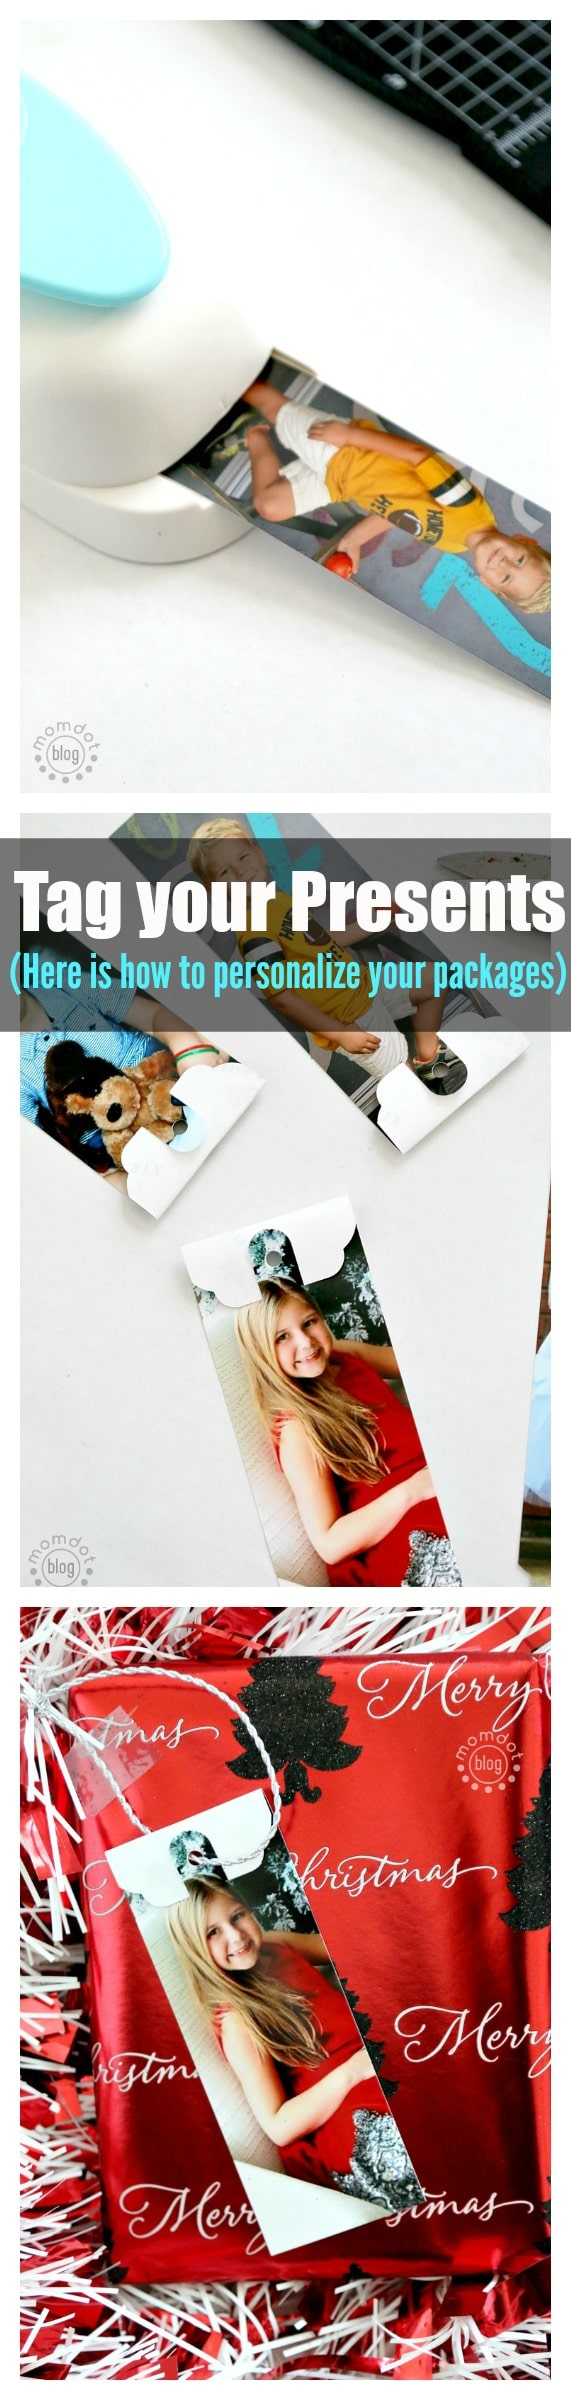 personalize christmas